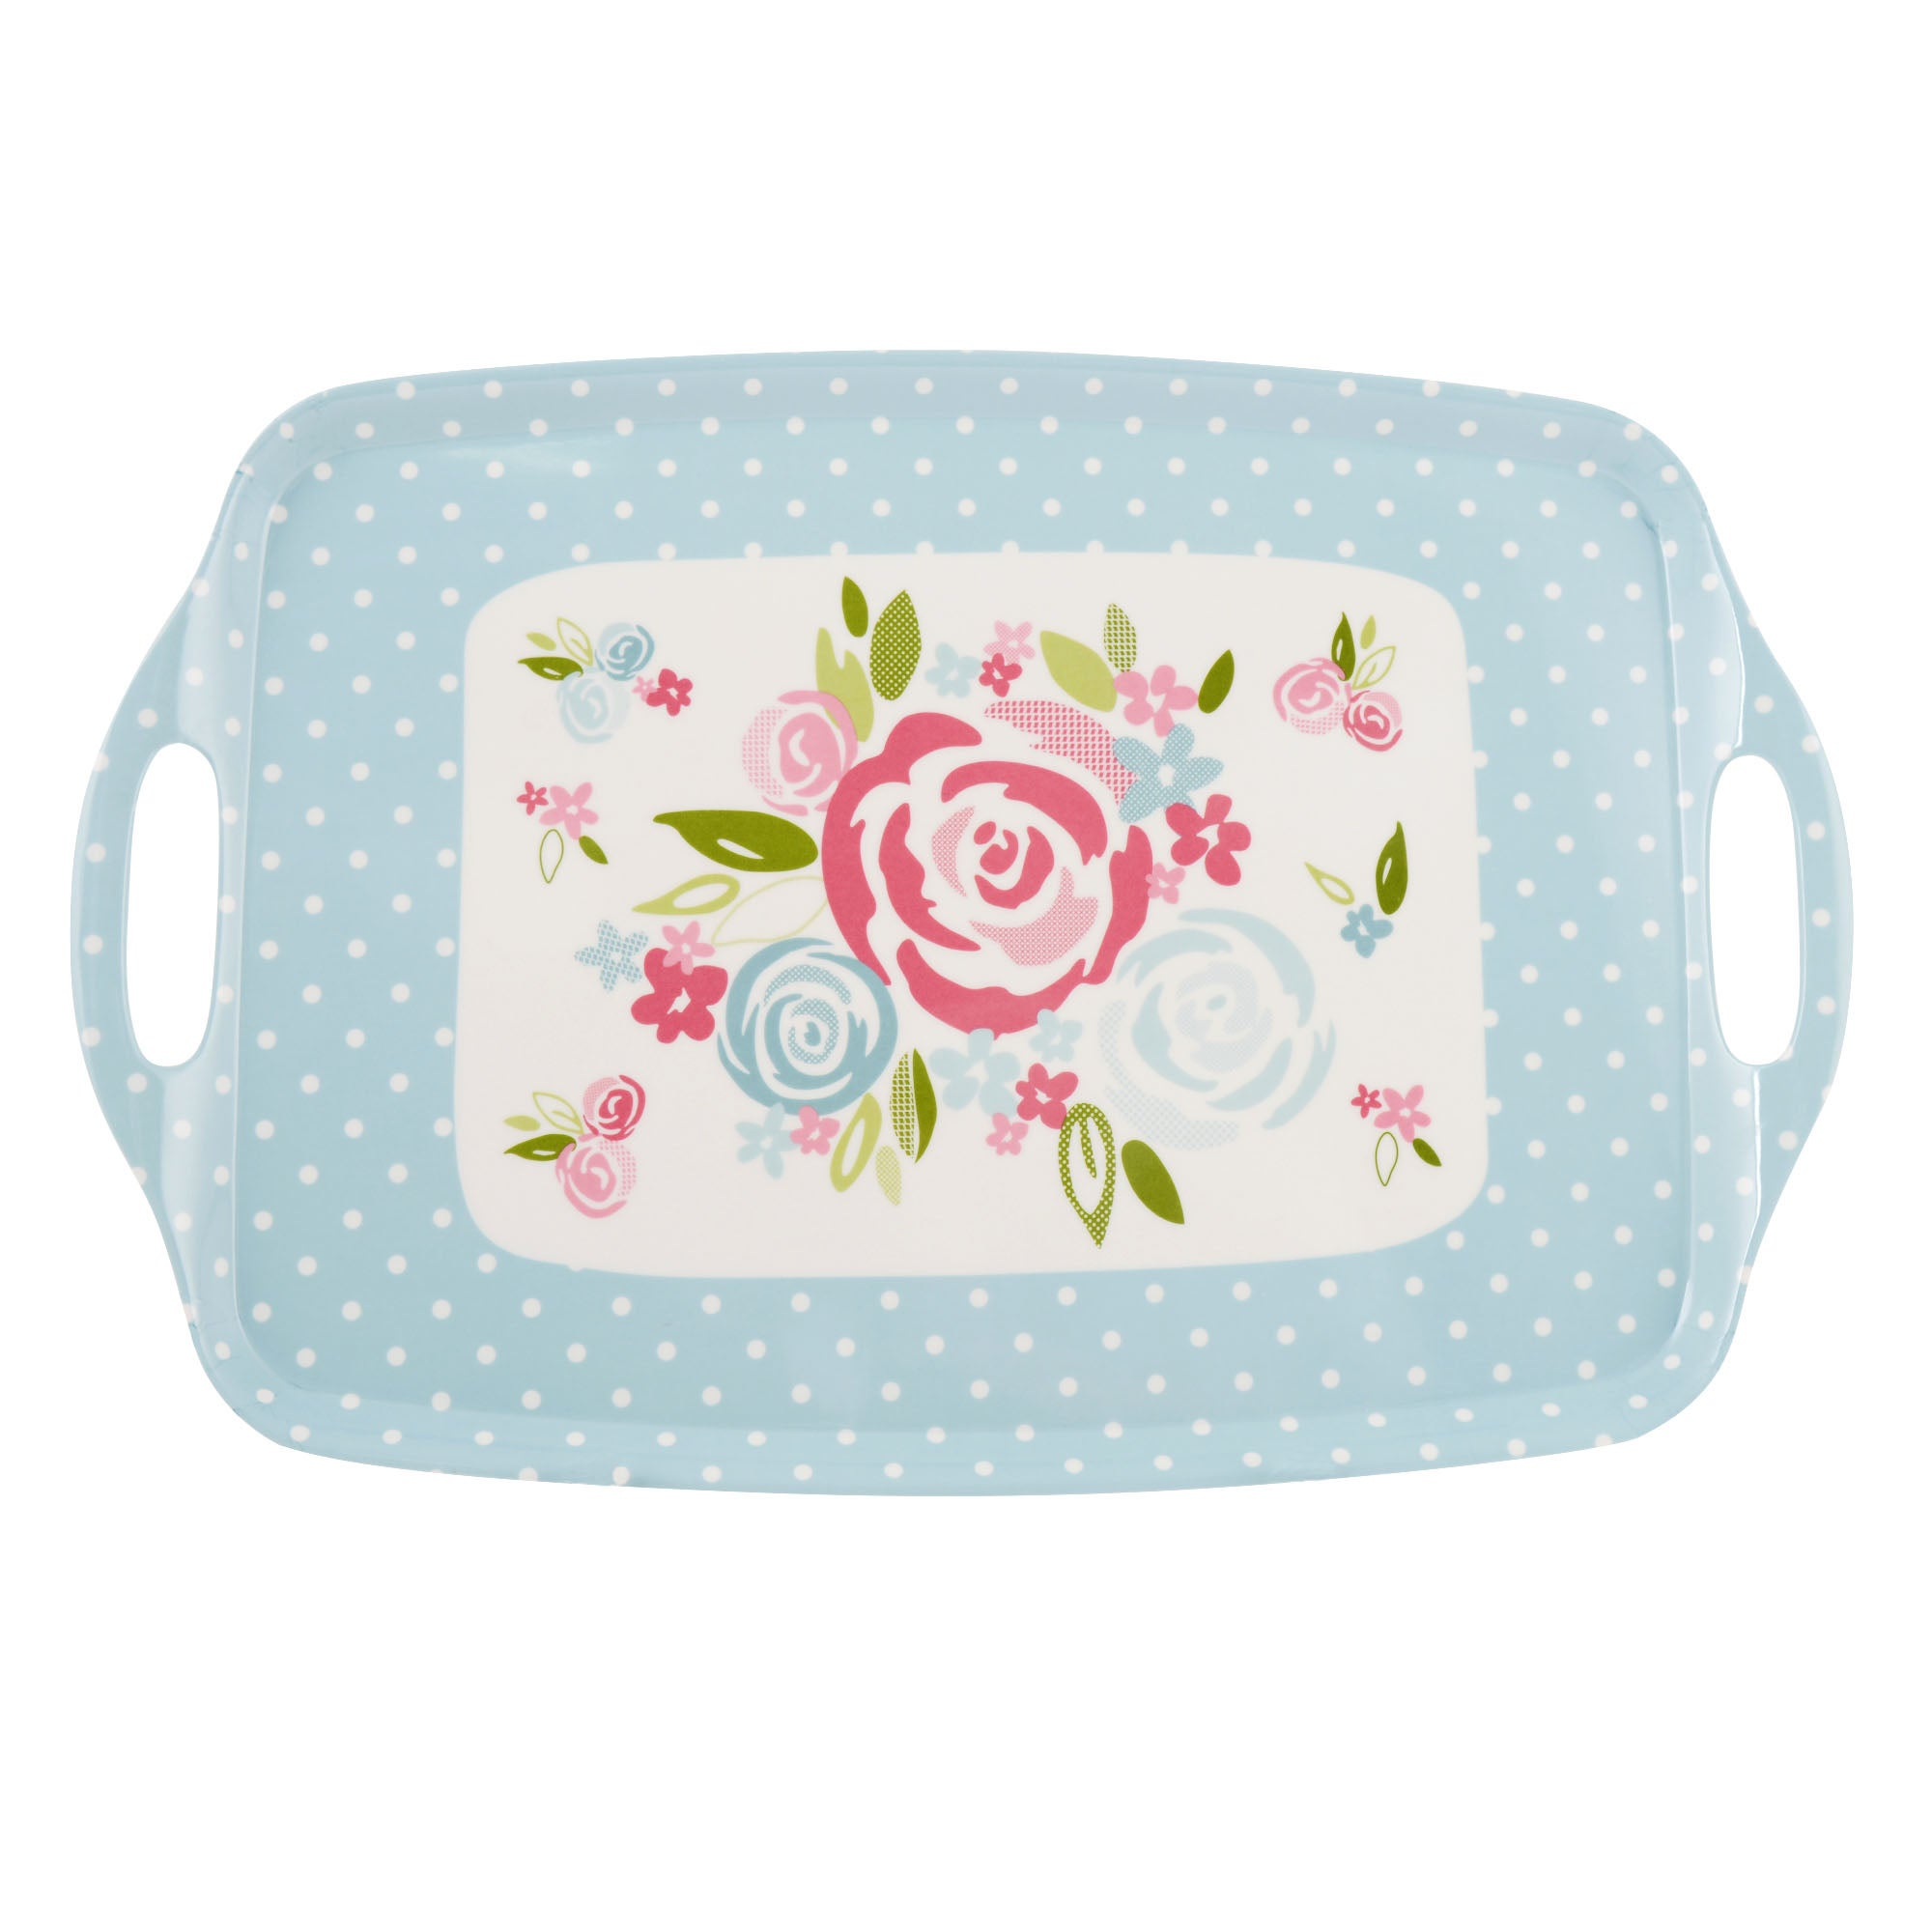 Candy Rose Collection Large Handled Tray